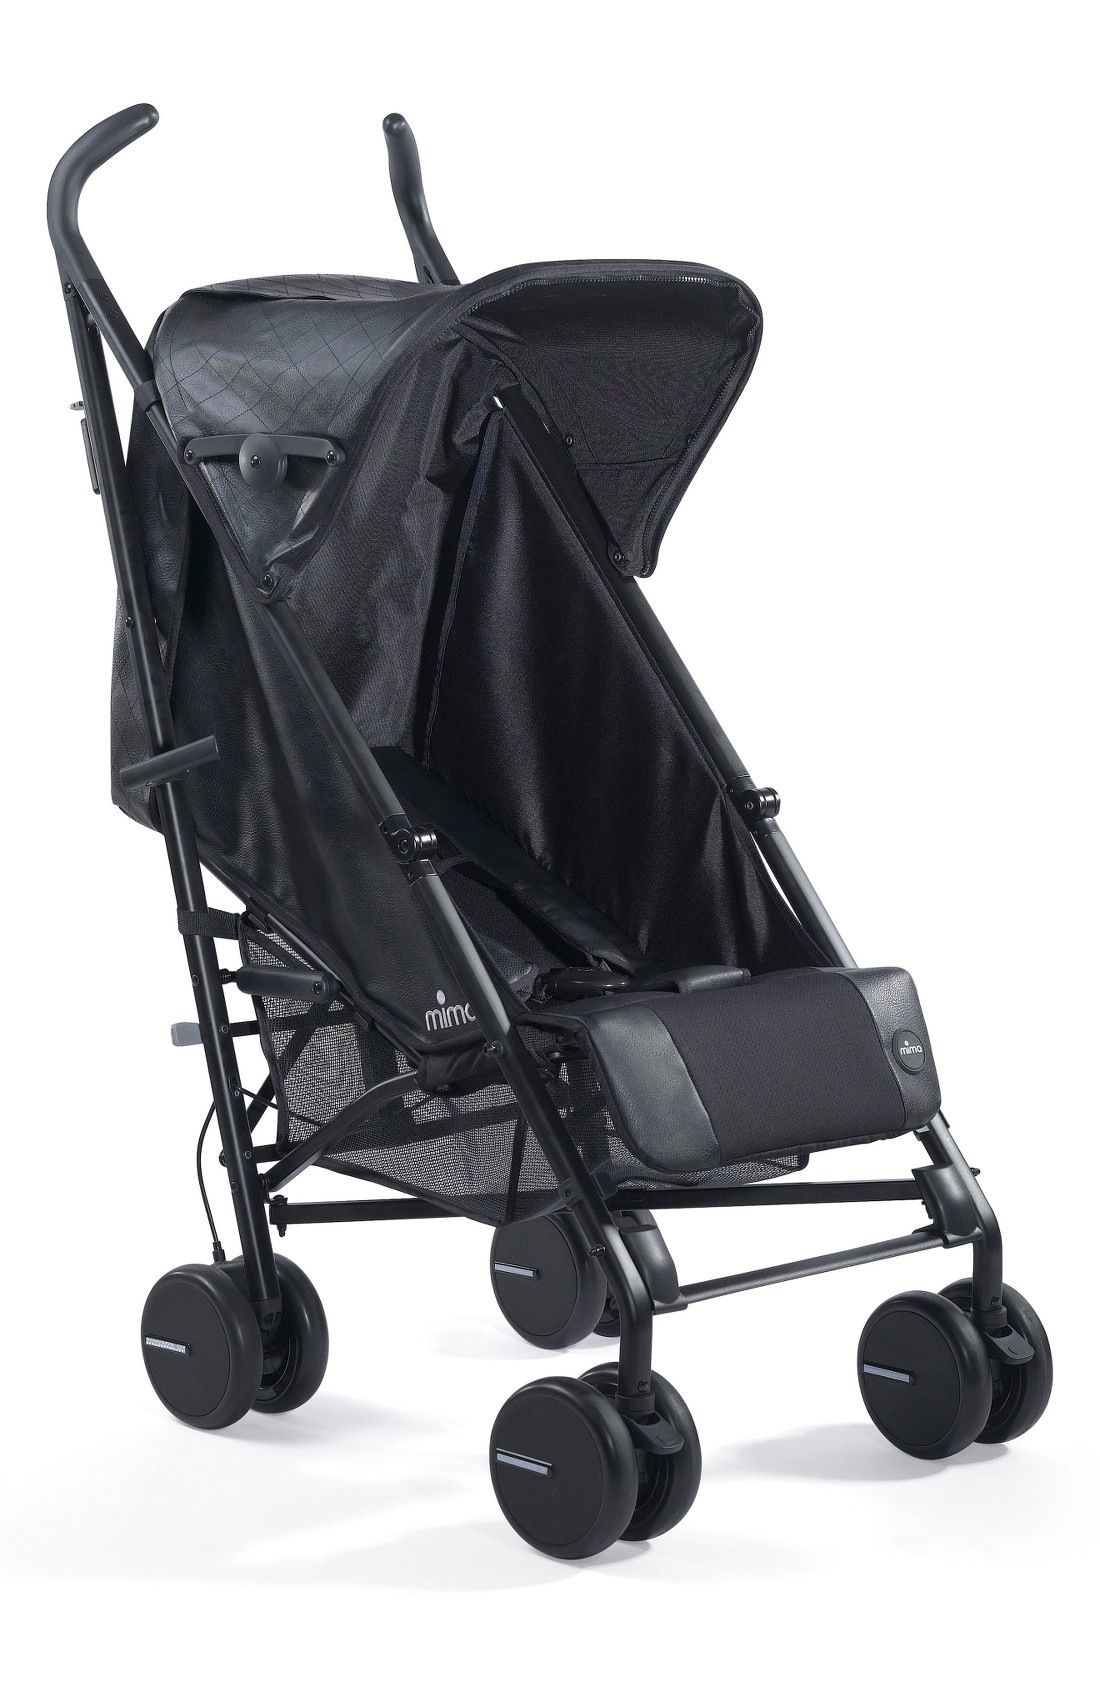 mima Bo Stroller Two seat stroller, Baby accessories